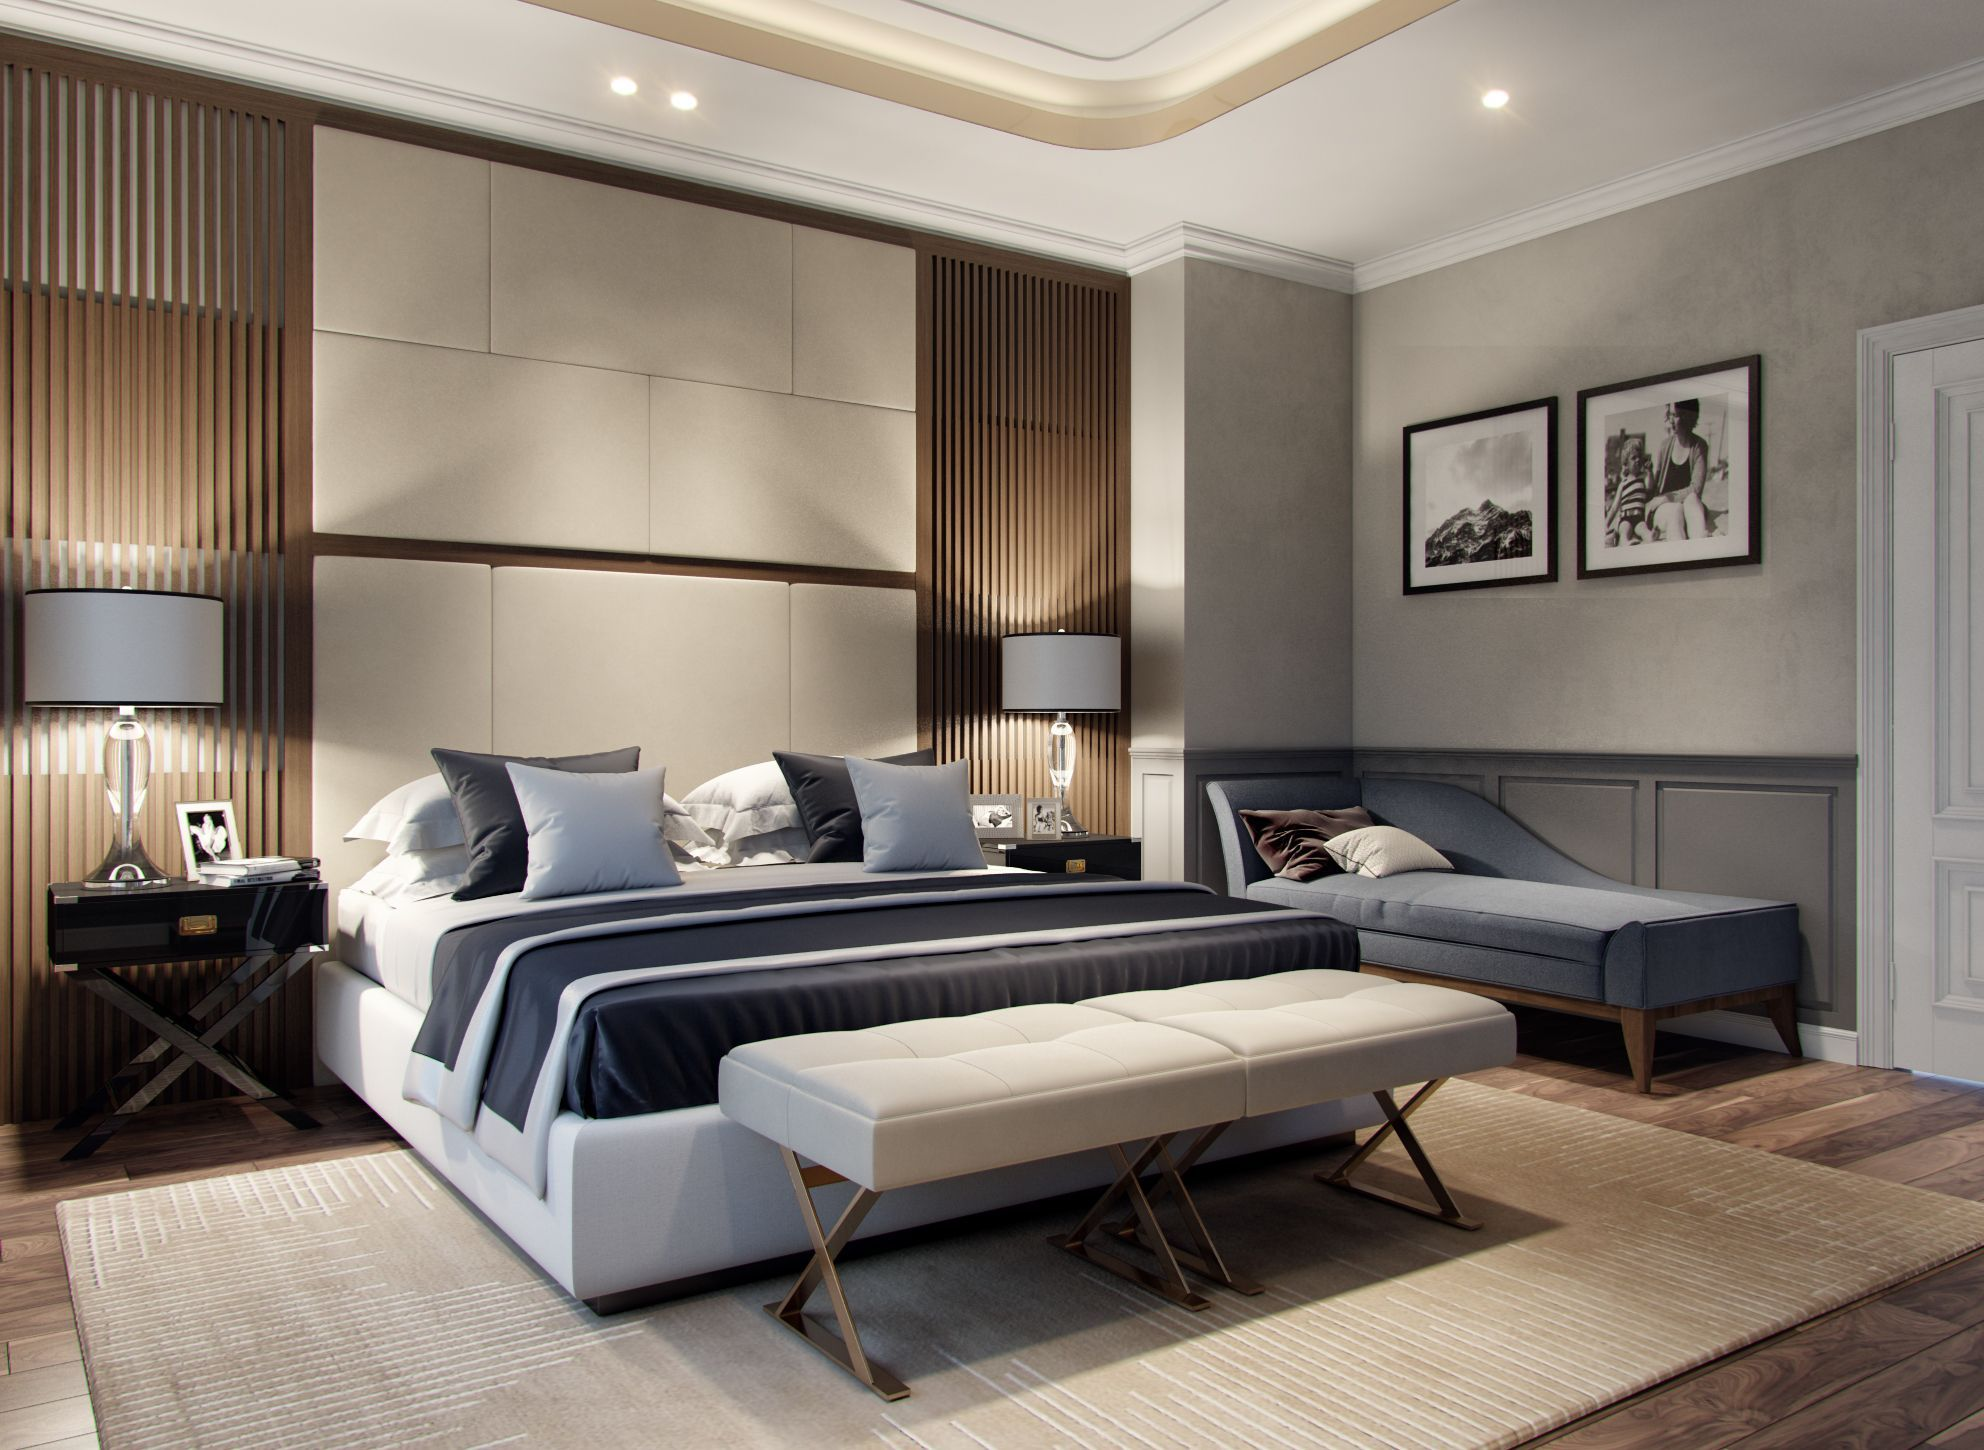 Bedroom Decor Inspirations Work In Progress A New Hotel Bedroom